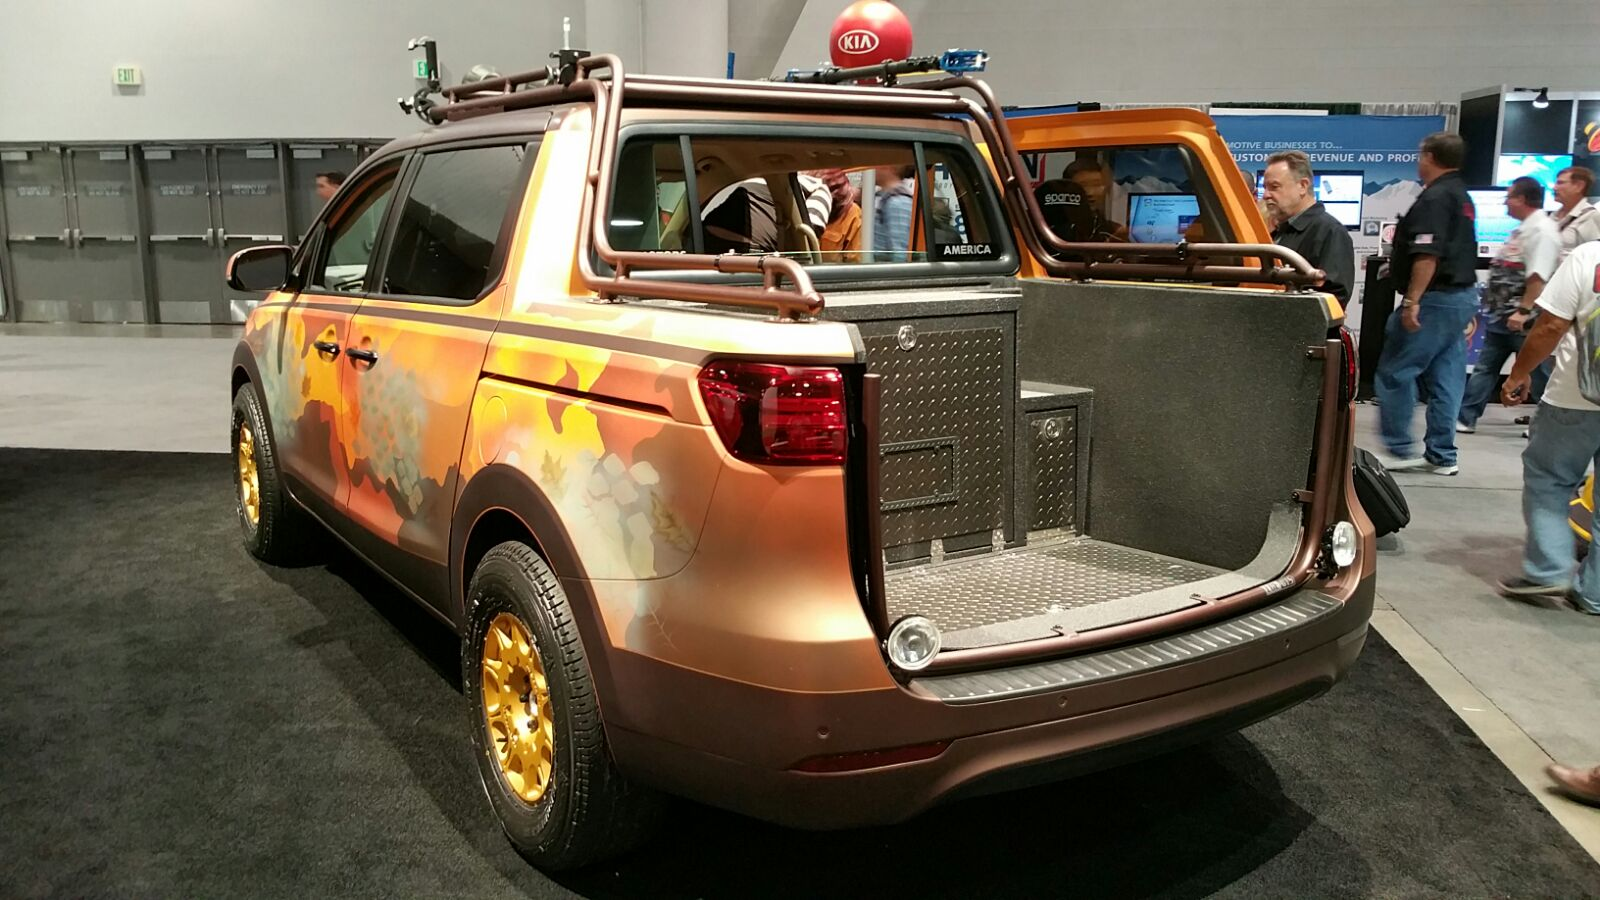 Photo Safari Kia Sedona at SEMA